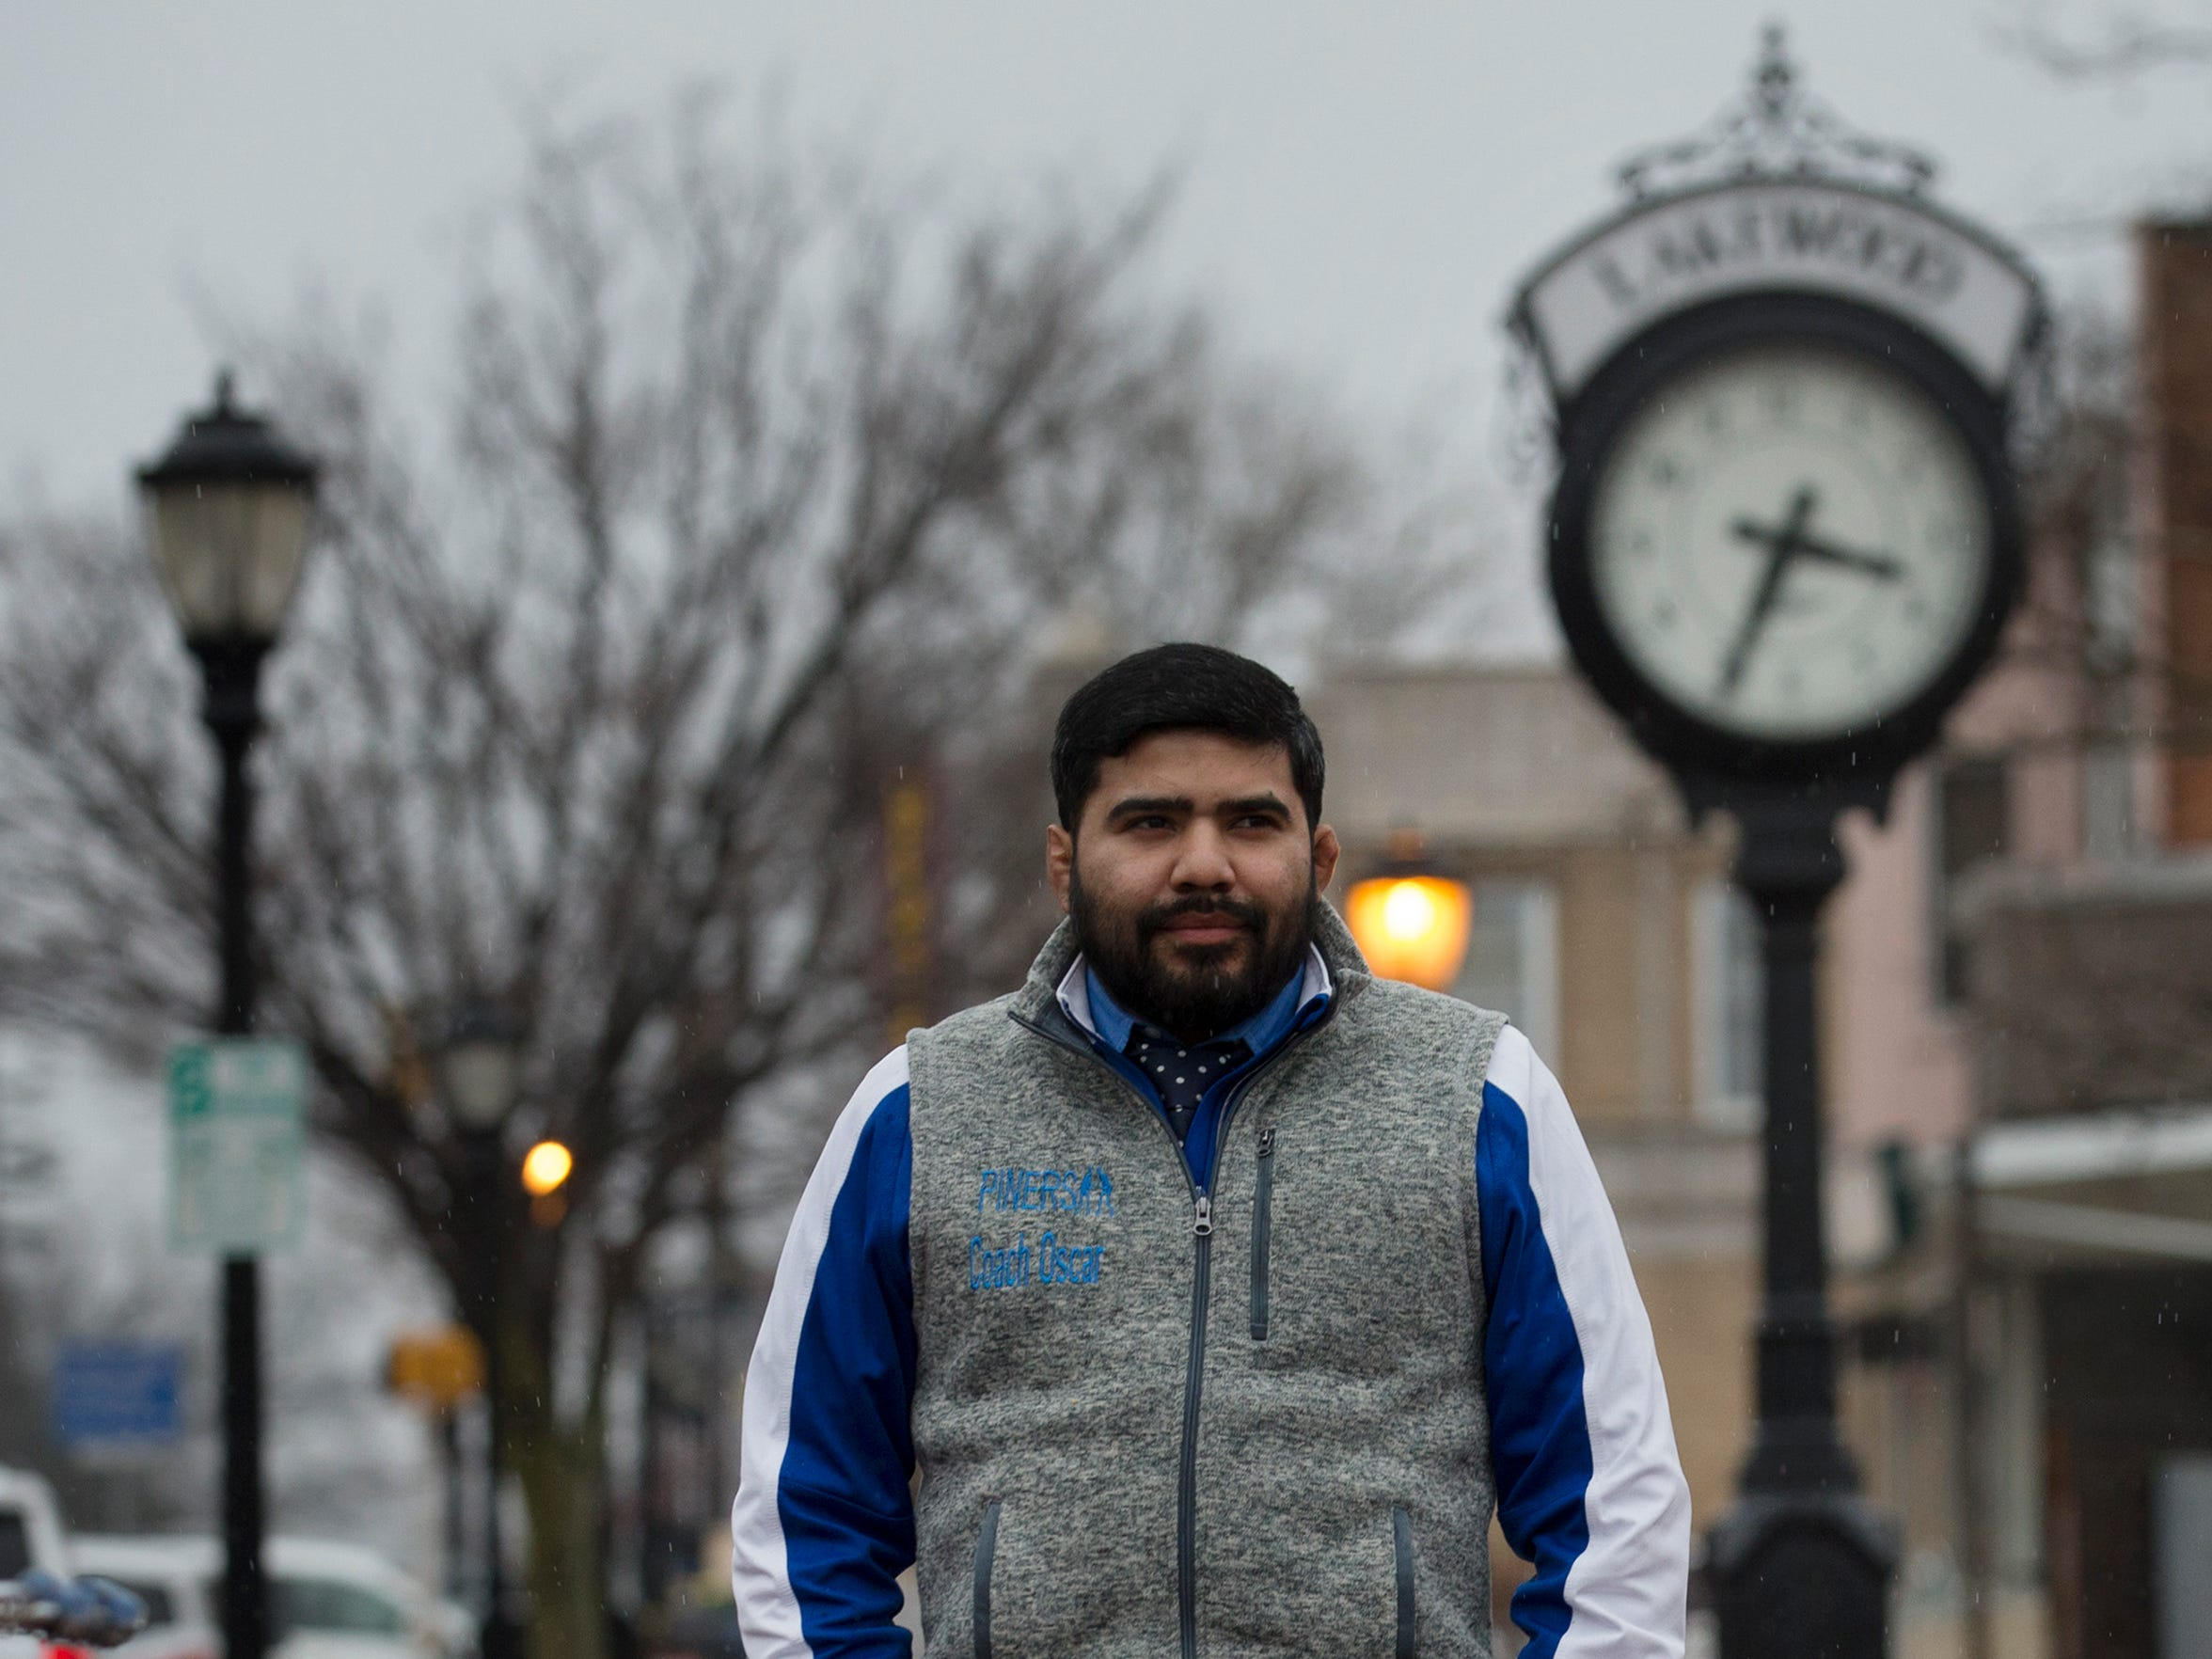 Lakewood wrestling coach Oscar Orellana does some shopping in downtown Lakewood after school as he waits for a wrestling match that night.